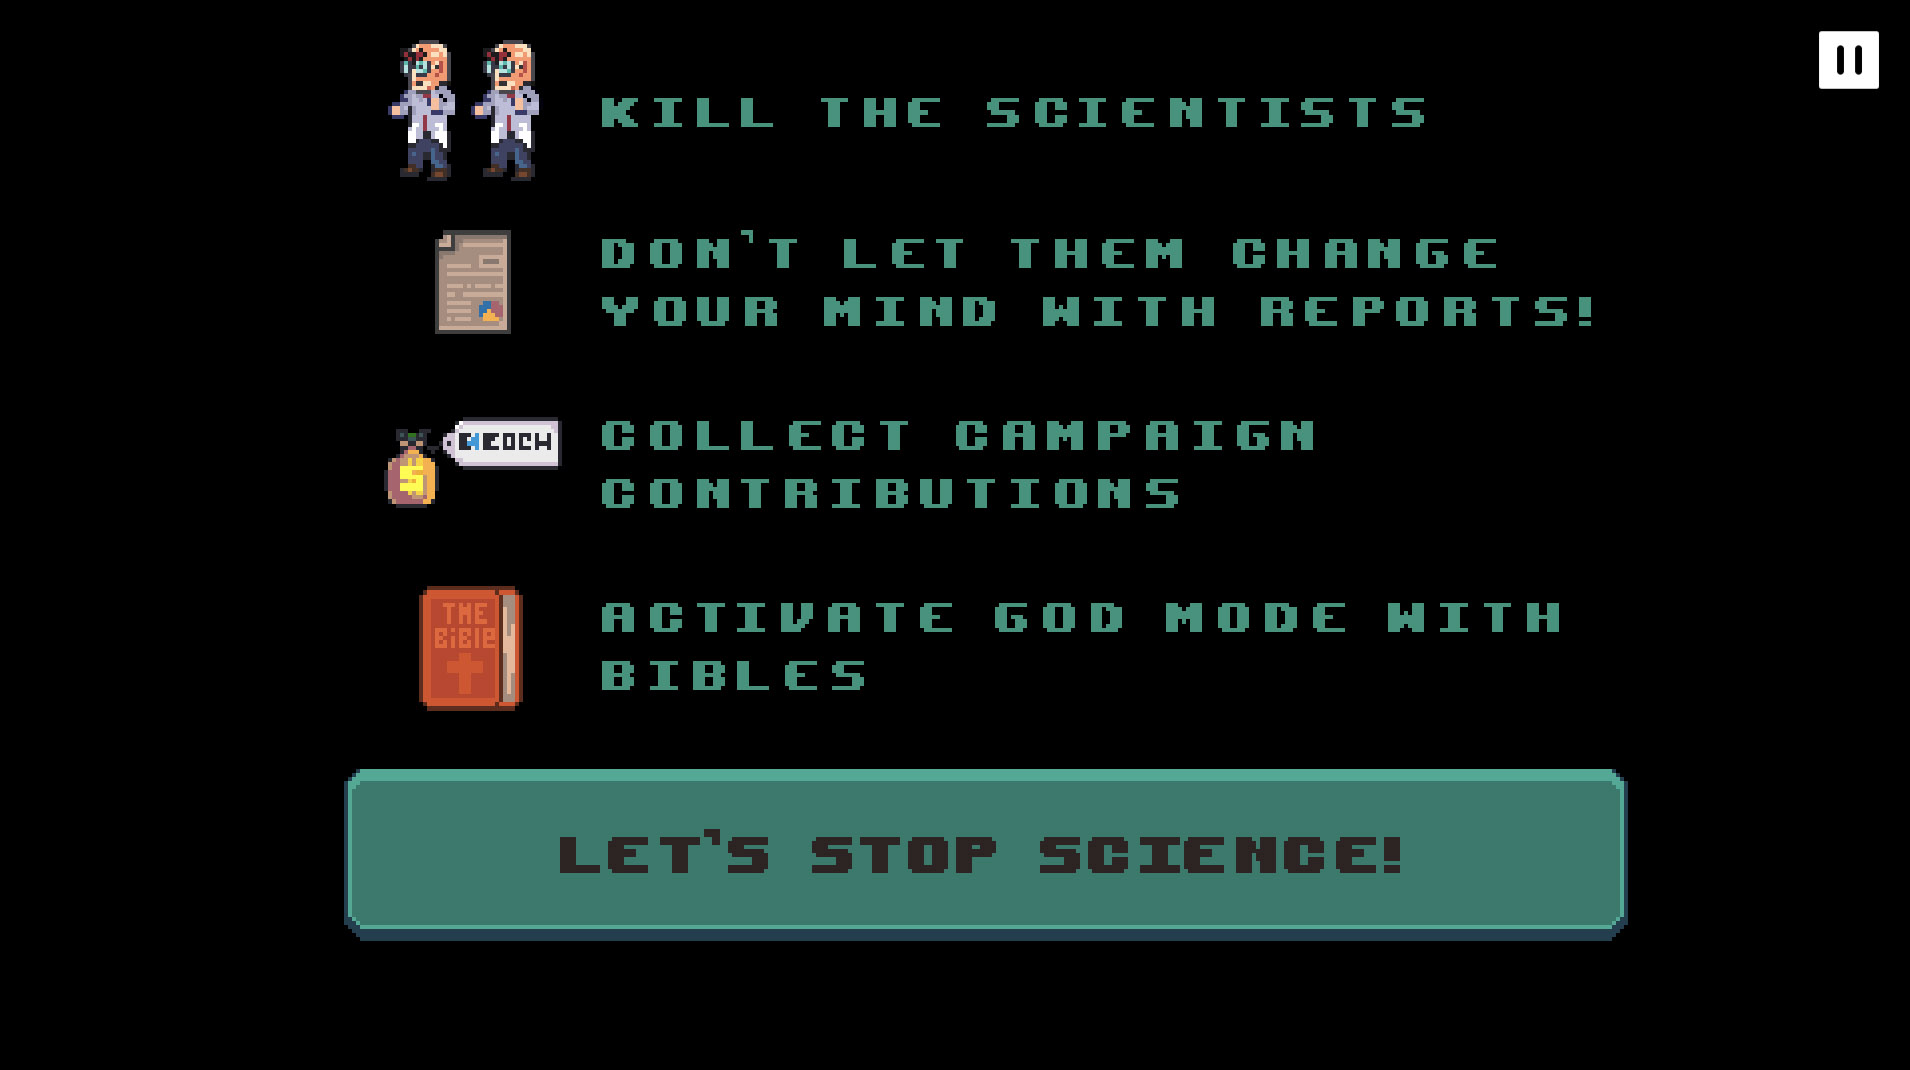 Eradicate scientists to win campaign collections